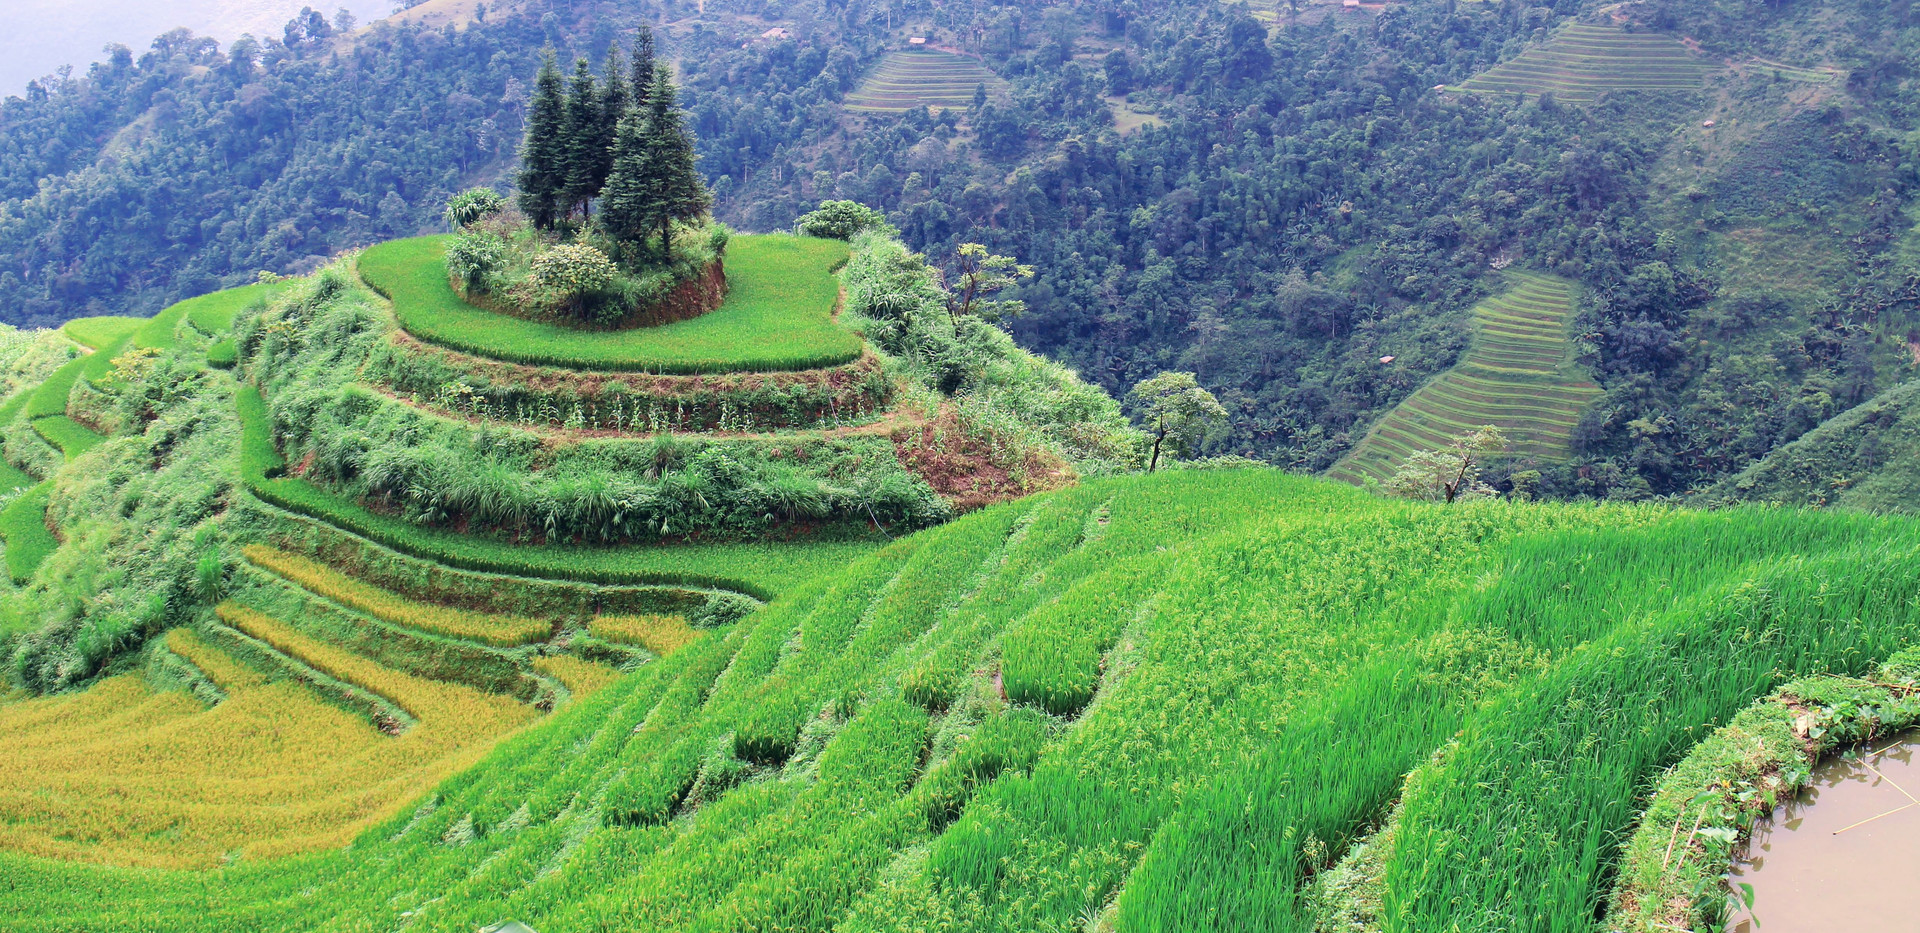 Unique rice fields in Ha Giang